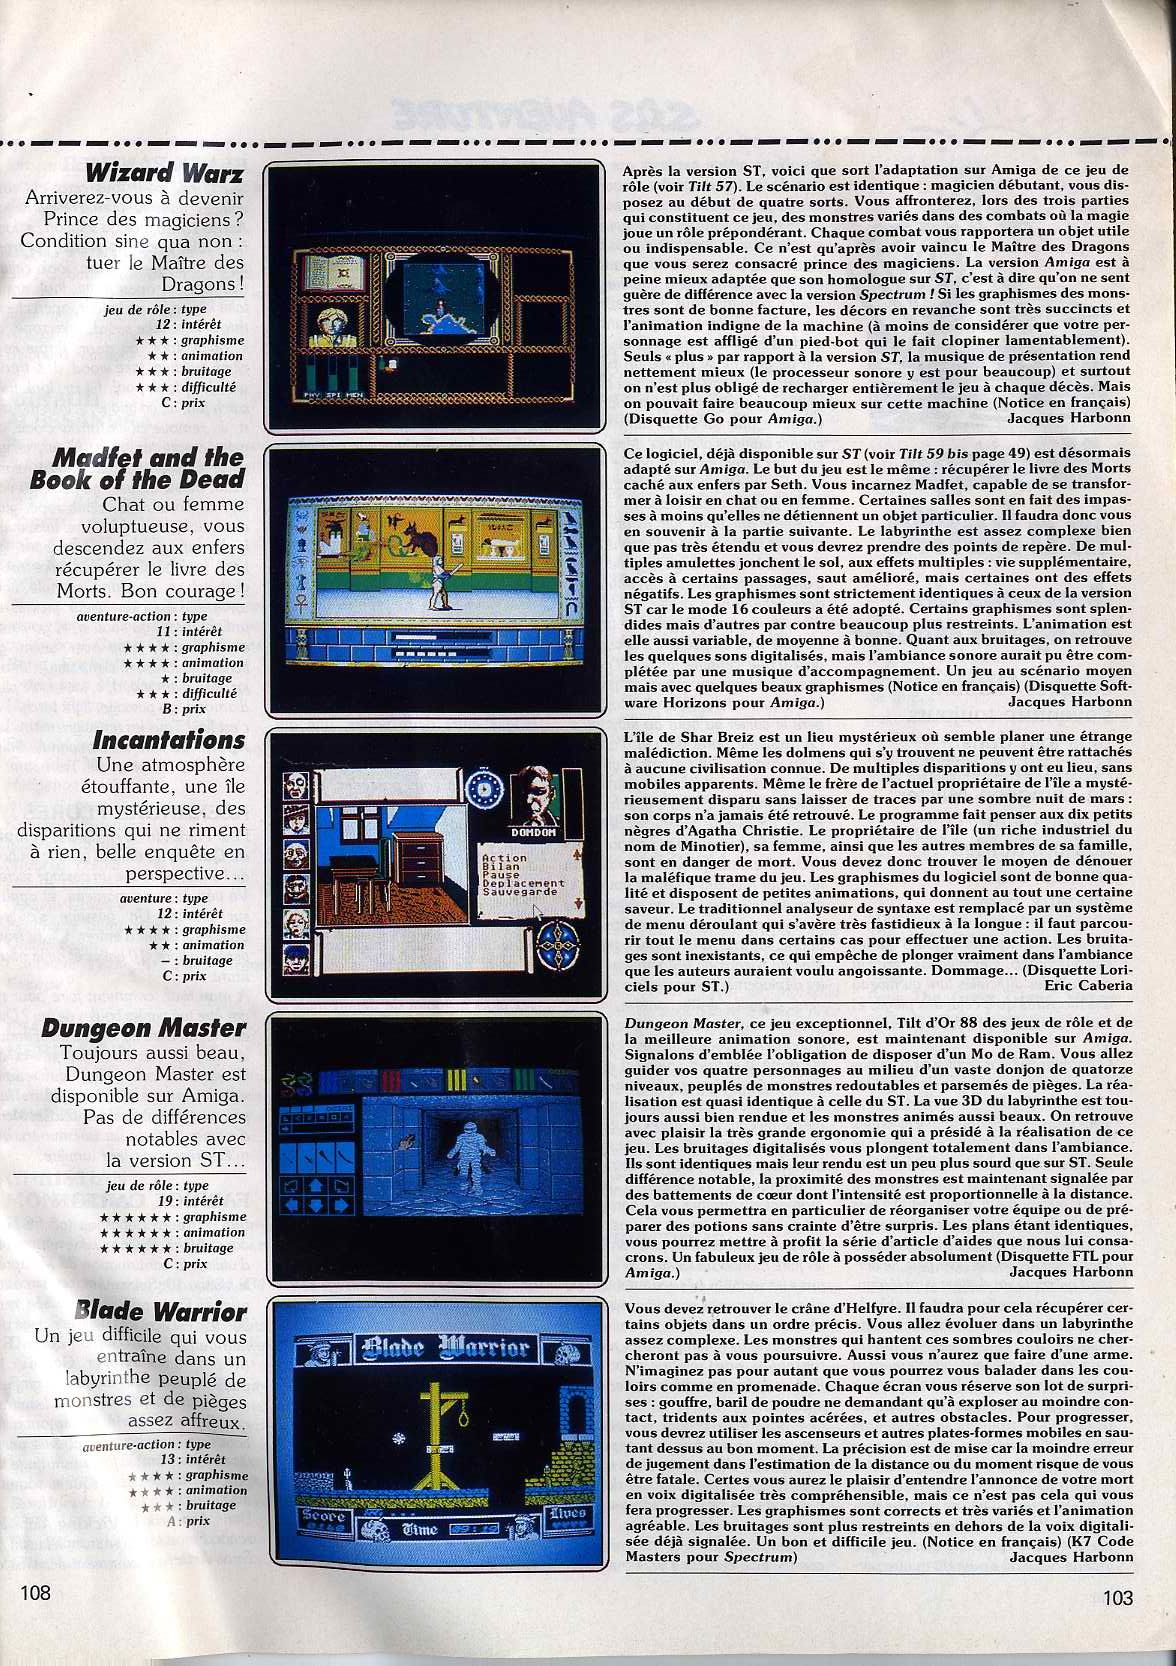 Dungeon Master for Amiga Review published in French magazine 'Tilt', Issue #63, February 1989, Page 103